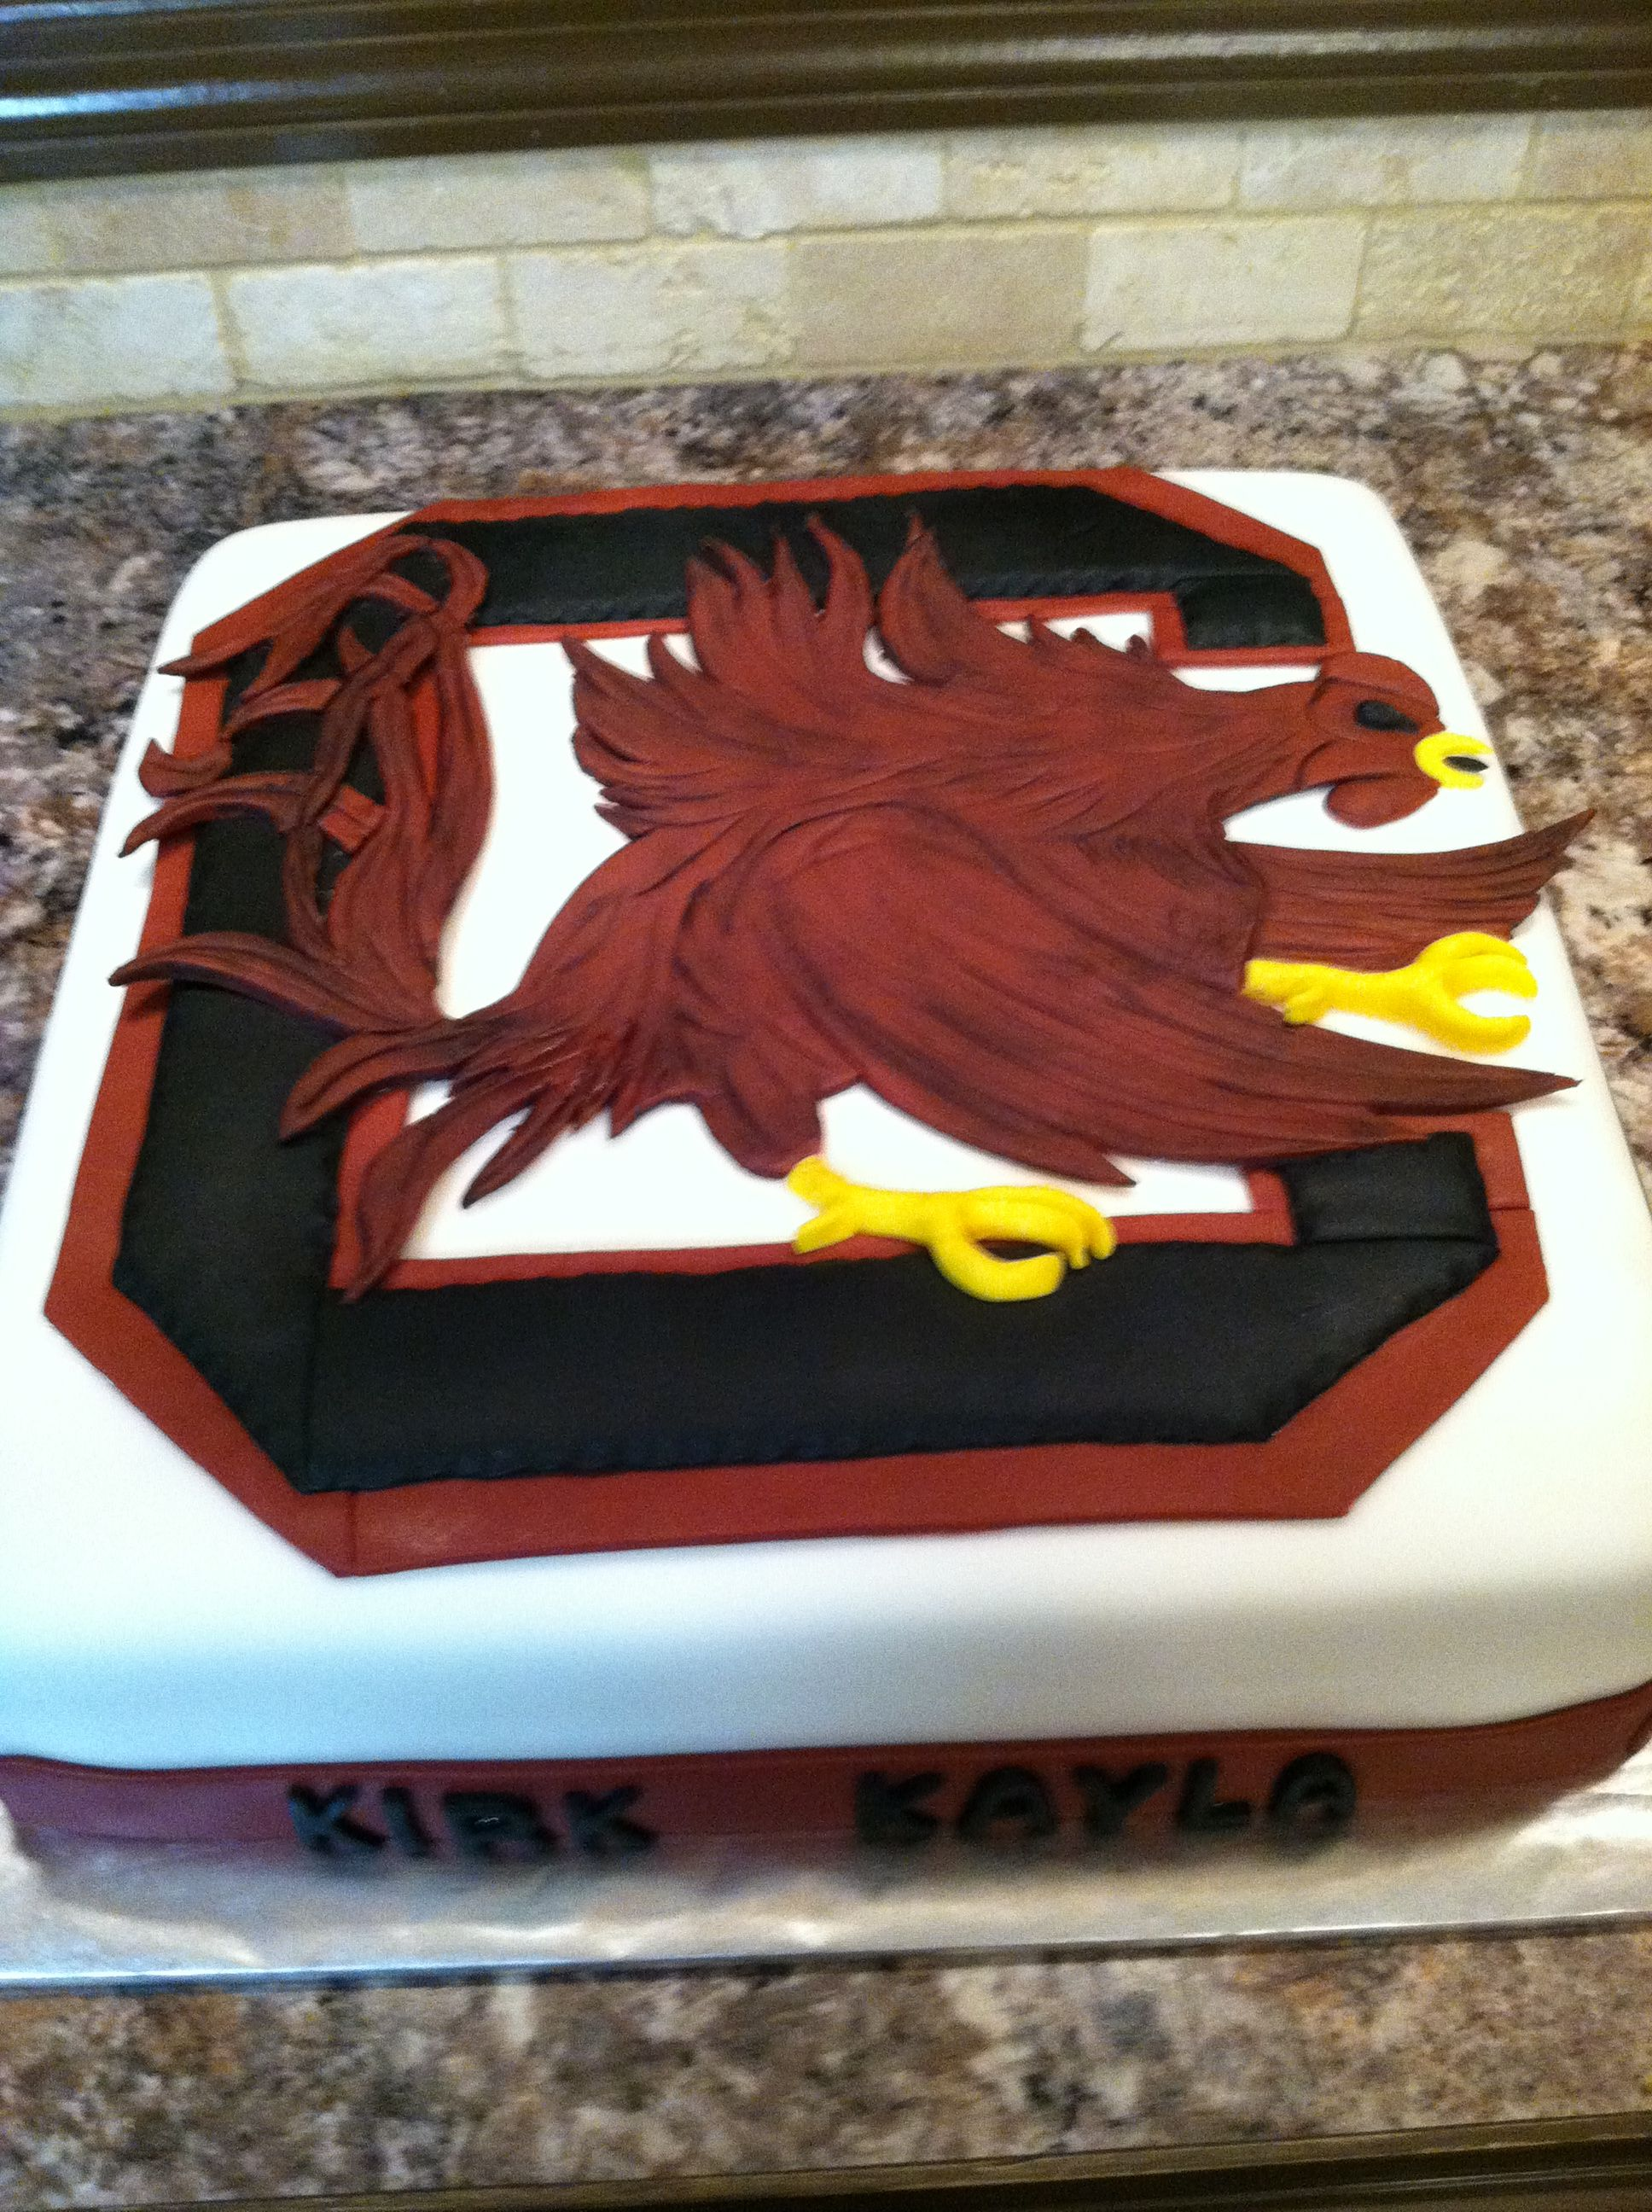 Gamecock Grooms Cake I Made All Made From Fondant Cakes Pinterest